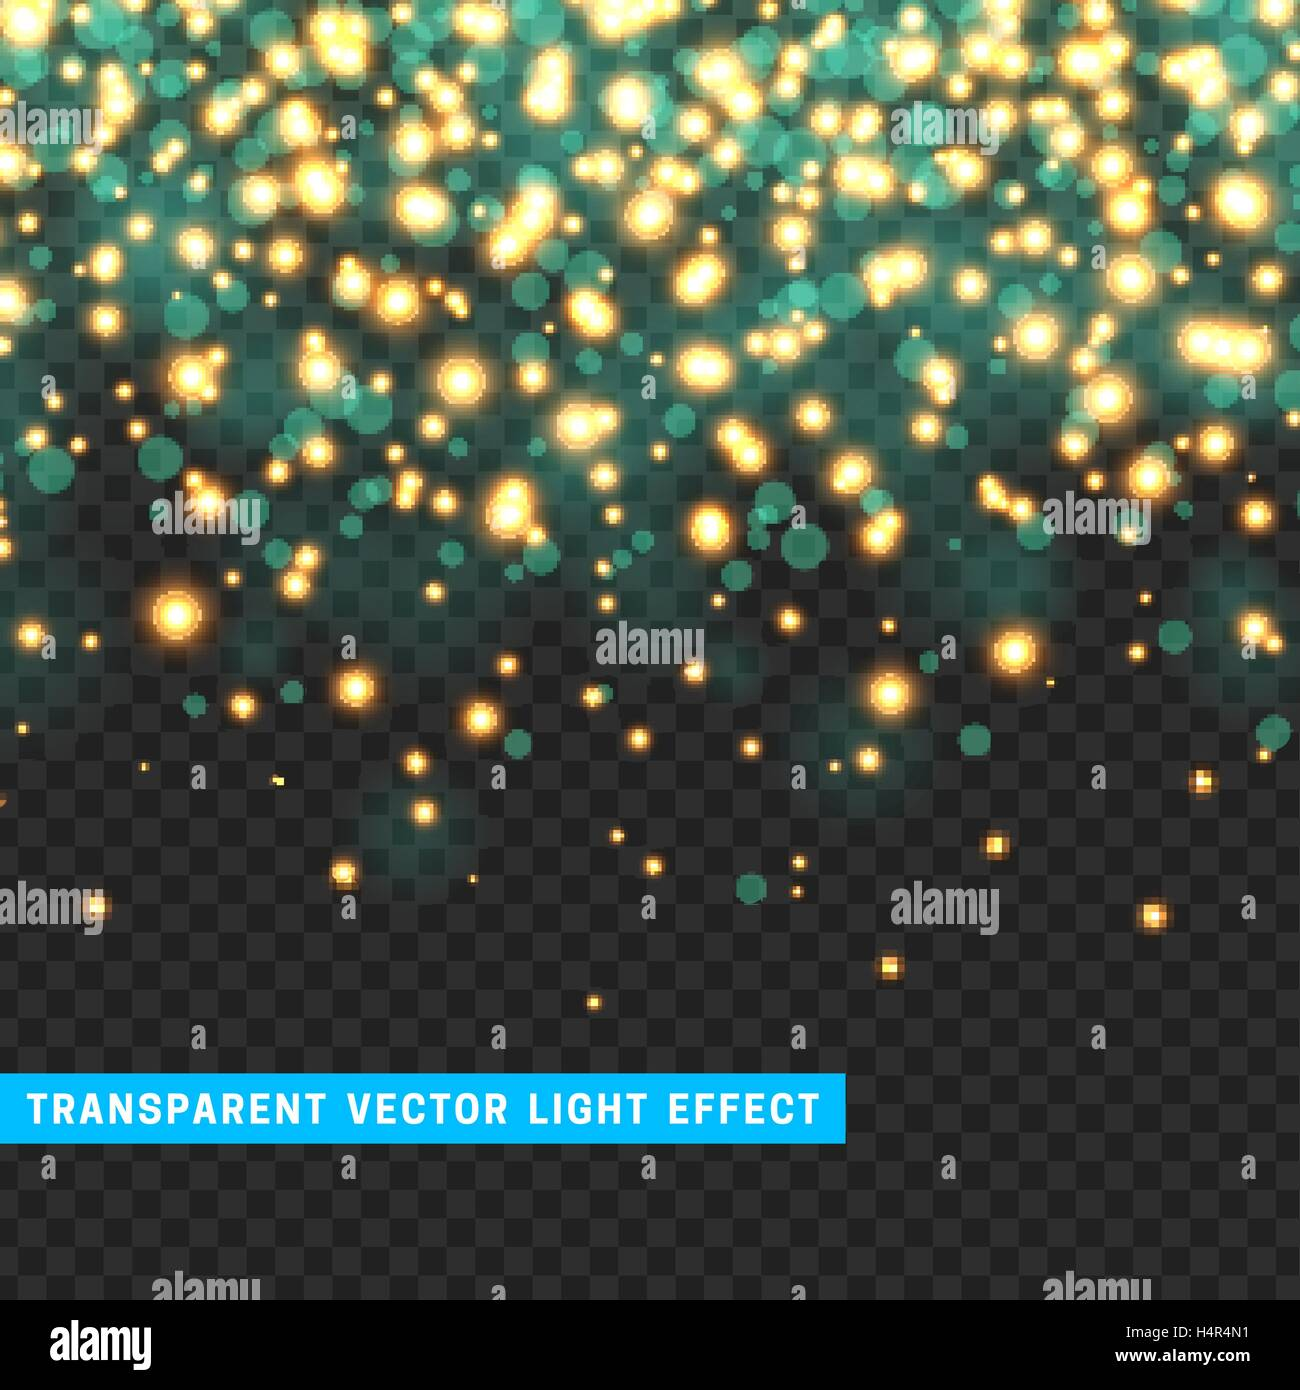 Vector with transparency light effect sparklers. - Stock Vector